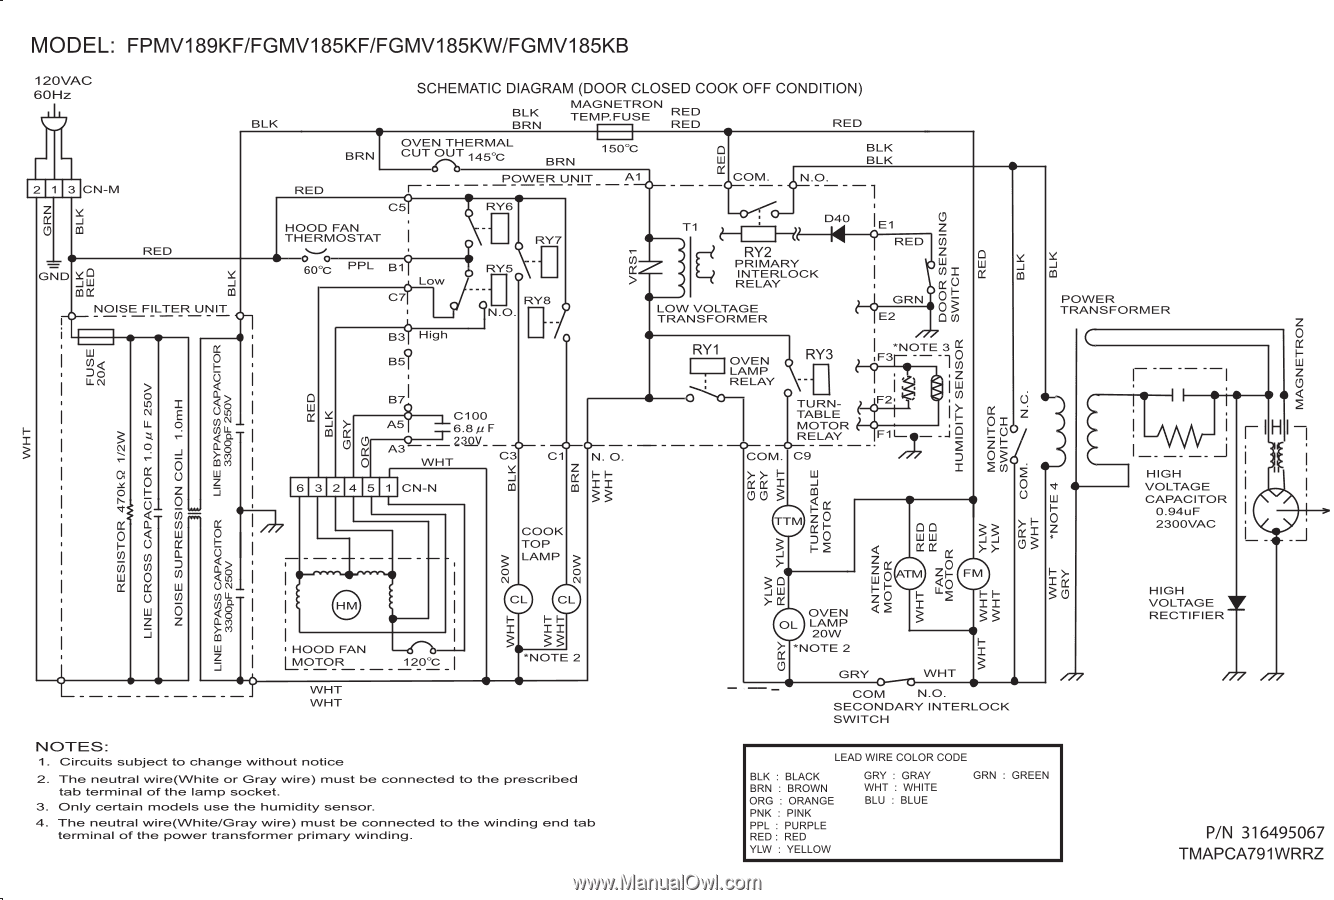 Refrigerator Wiring Diagram Images Of Wiring Diagram For Frigidaire